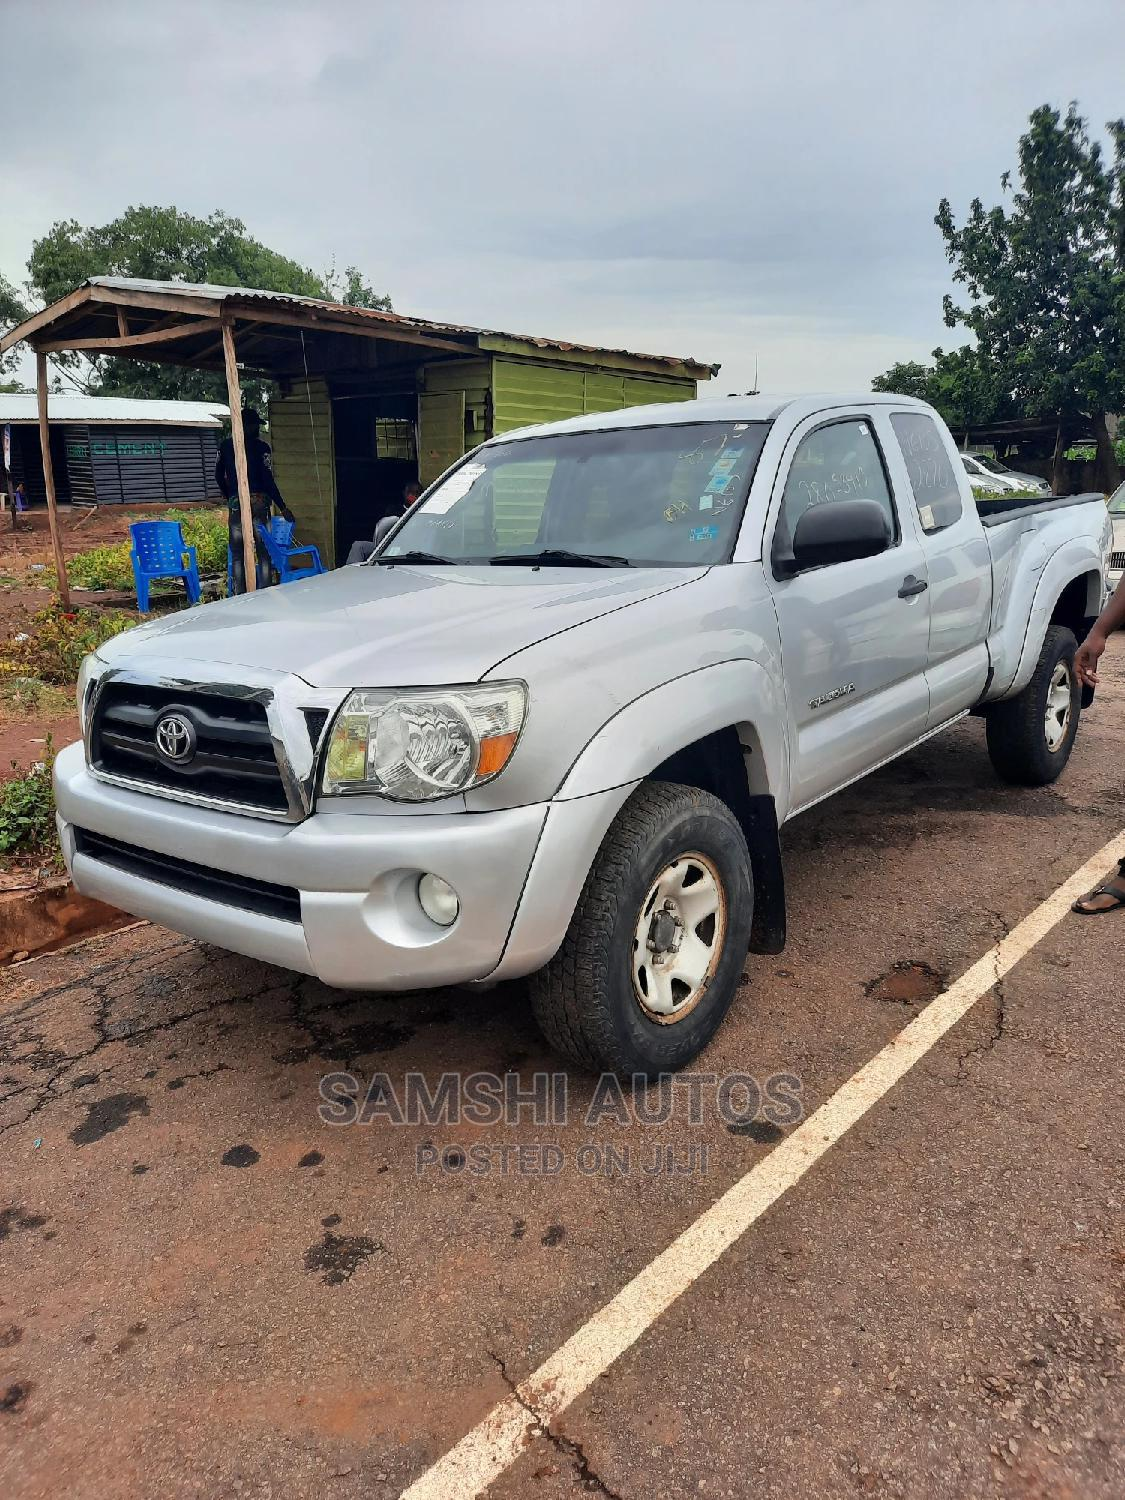 Archive: Toyota Tacoma 2008 4x4 Access Cab Silver